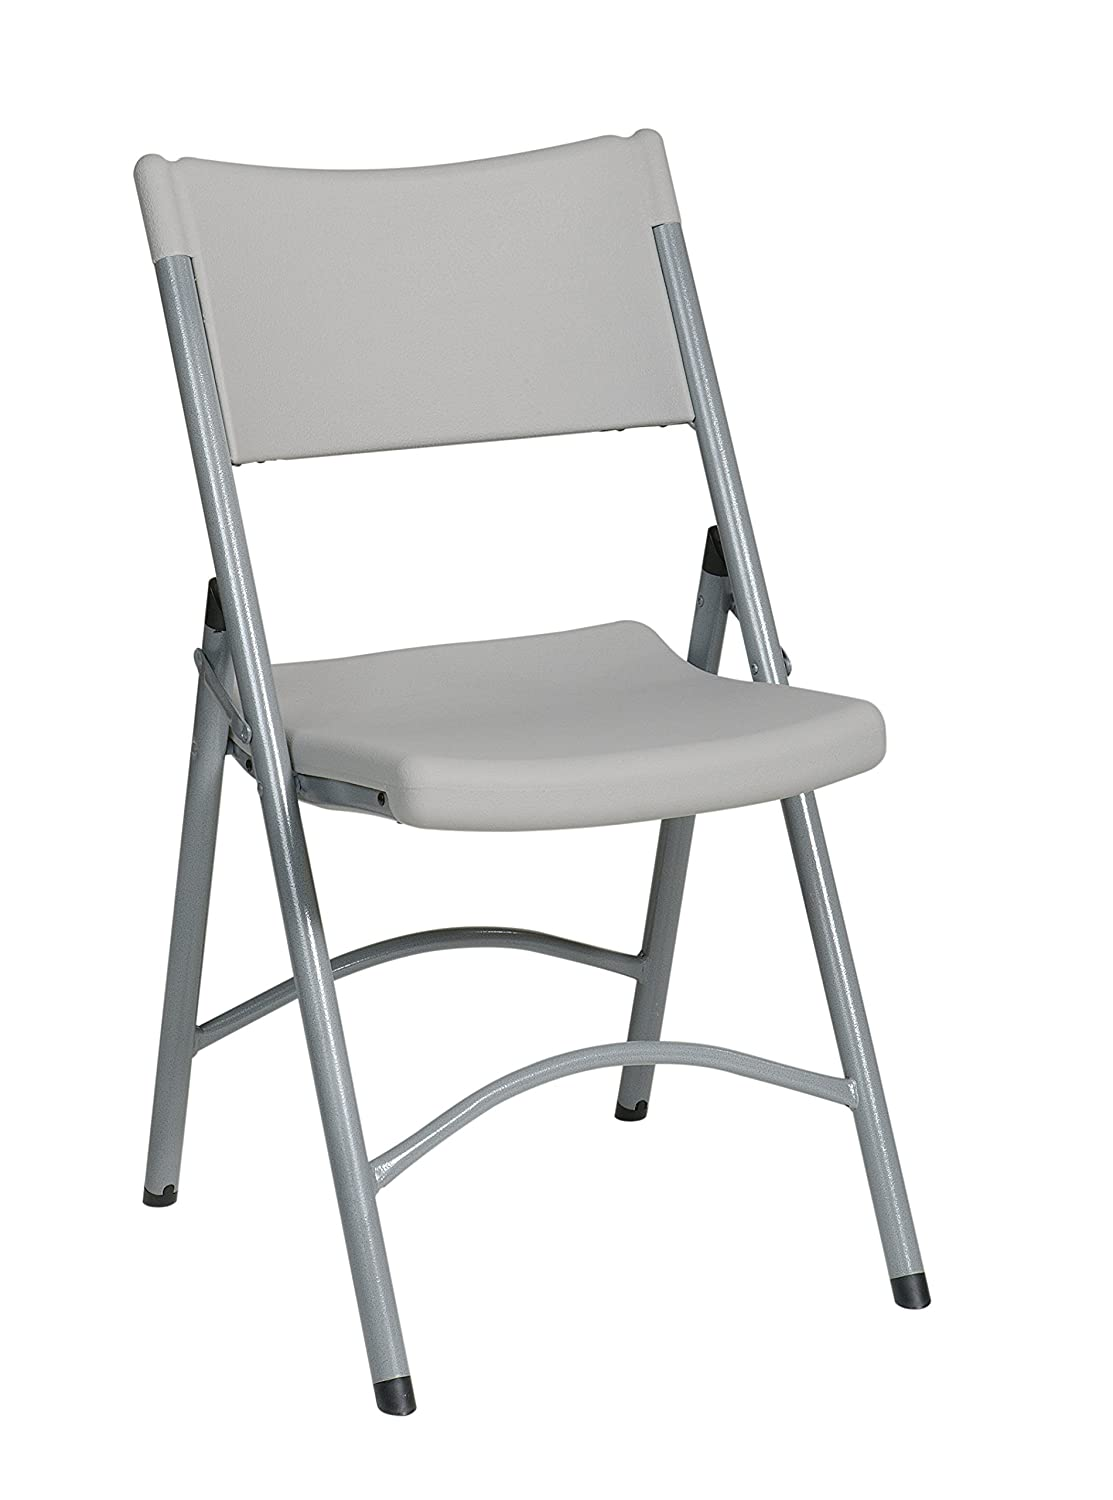 Office Star Resin Multi-Purpose Sqaured Folding Chair with Silver Accents, Set of 4